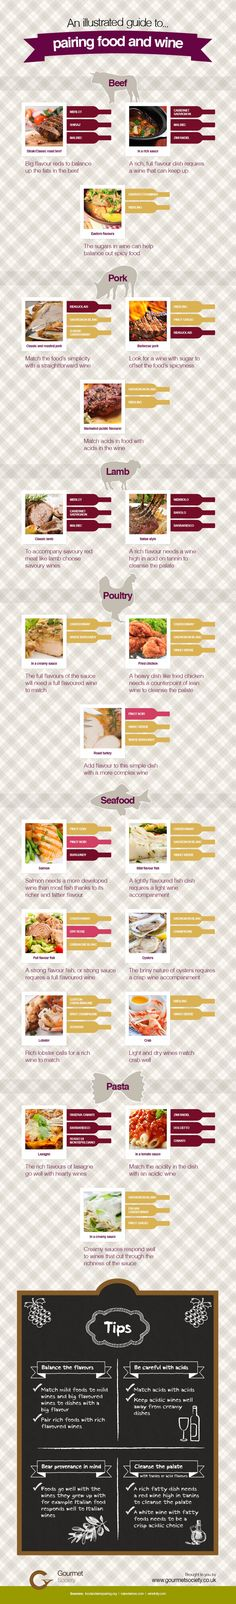 """Pairing Wine and Food Infographic www.LiquorList.com """"The Marketplace for Adults with Taste!"""" @LiquorListcom #LiquorList.com"""